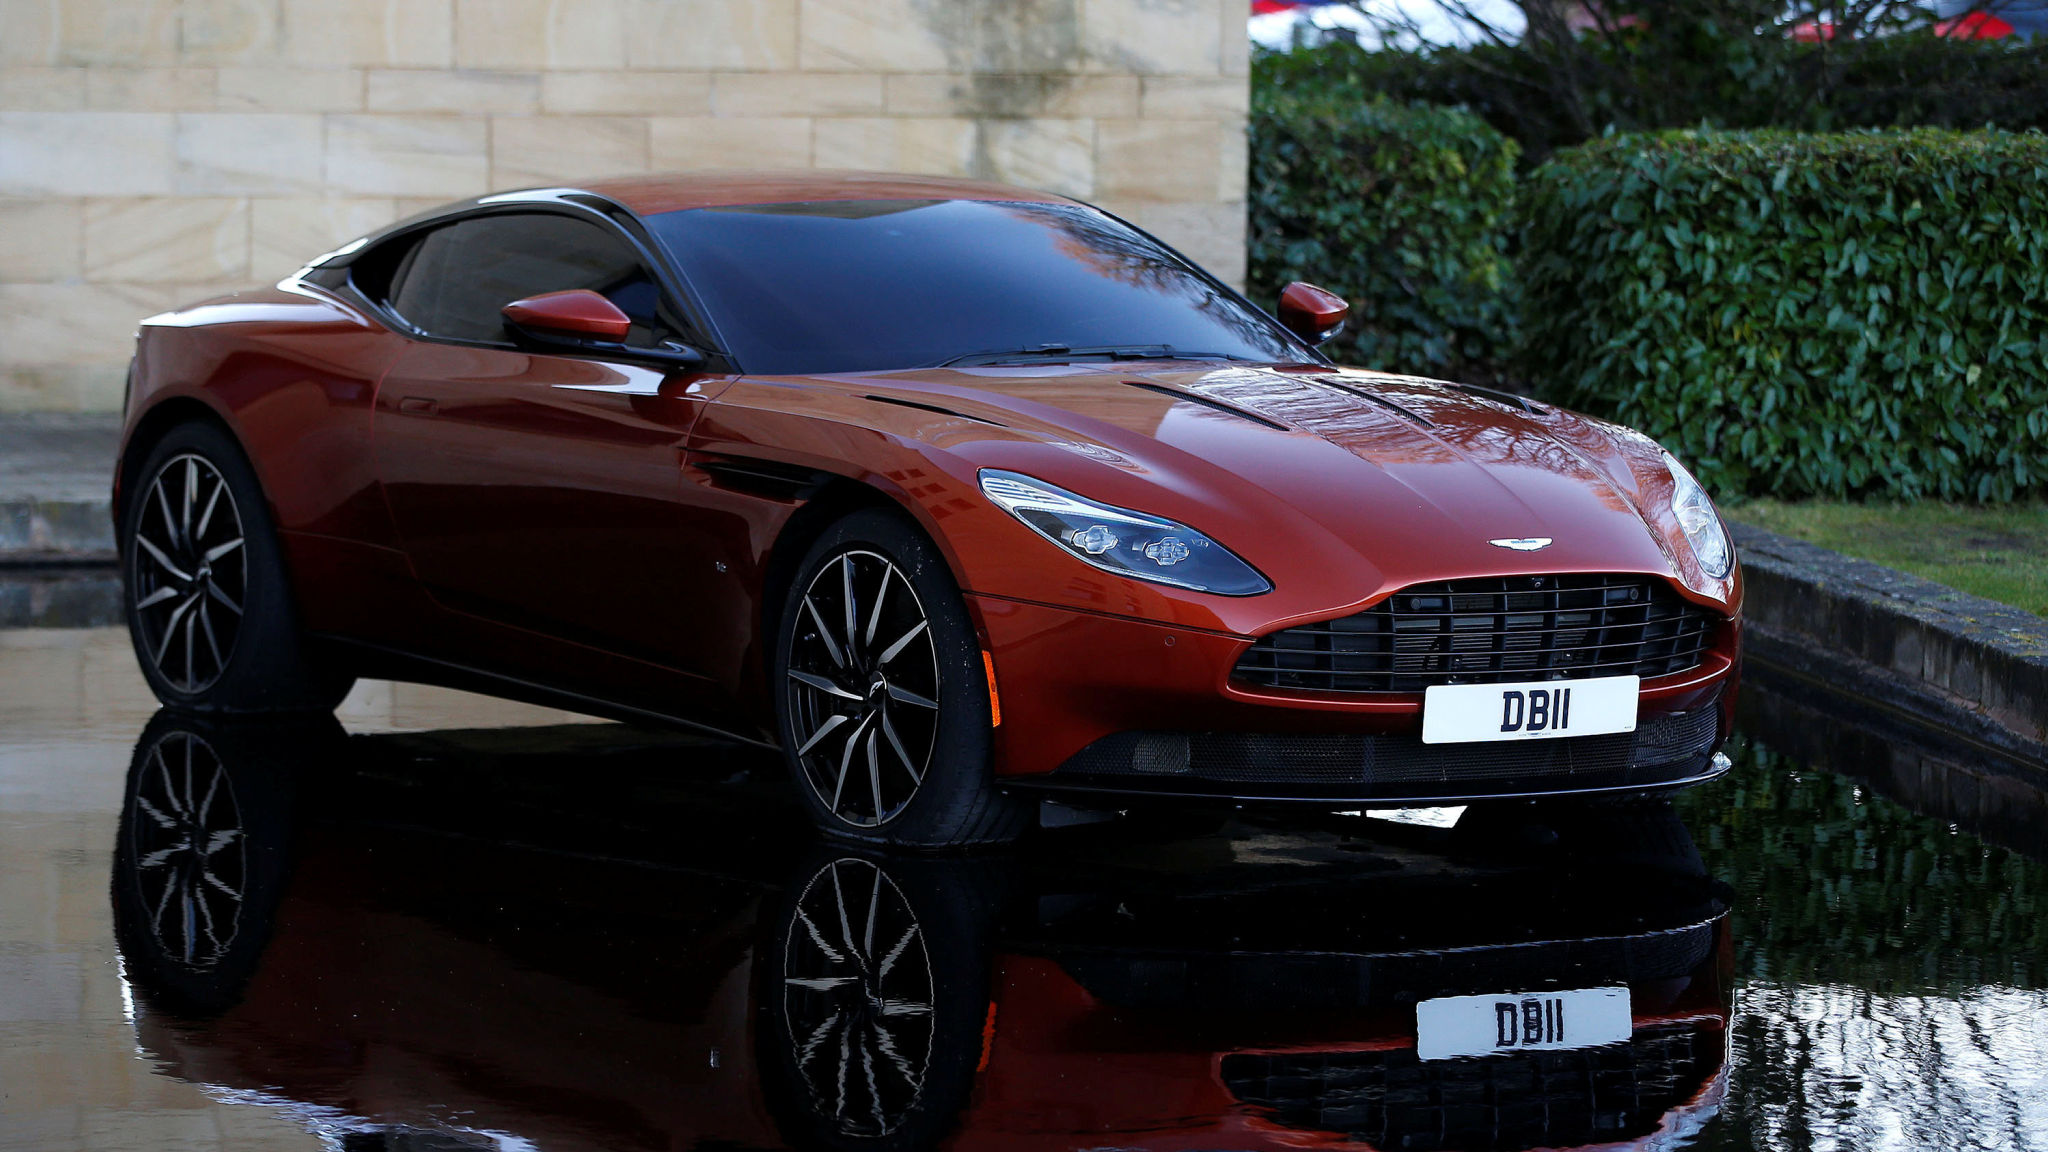 Aston Martin S Largest Shareholder Considers Upping Its Stake Financial Times